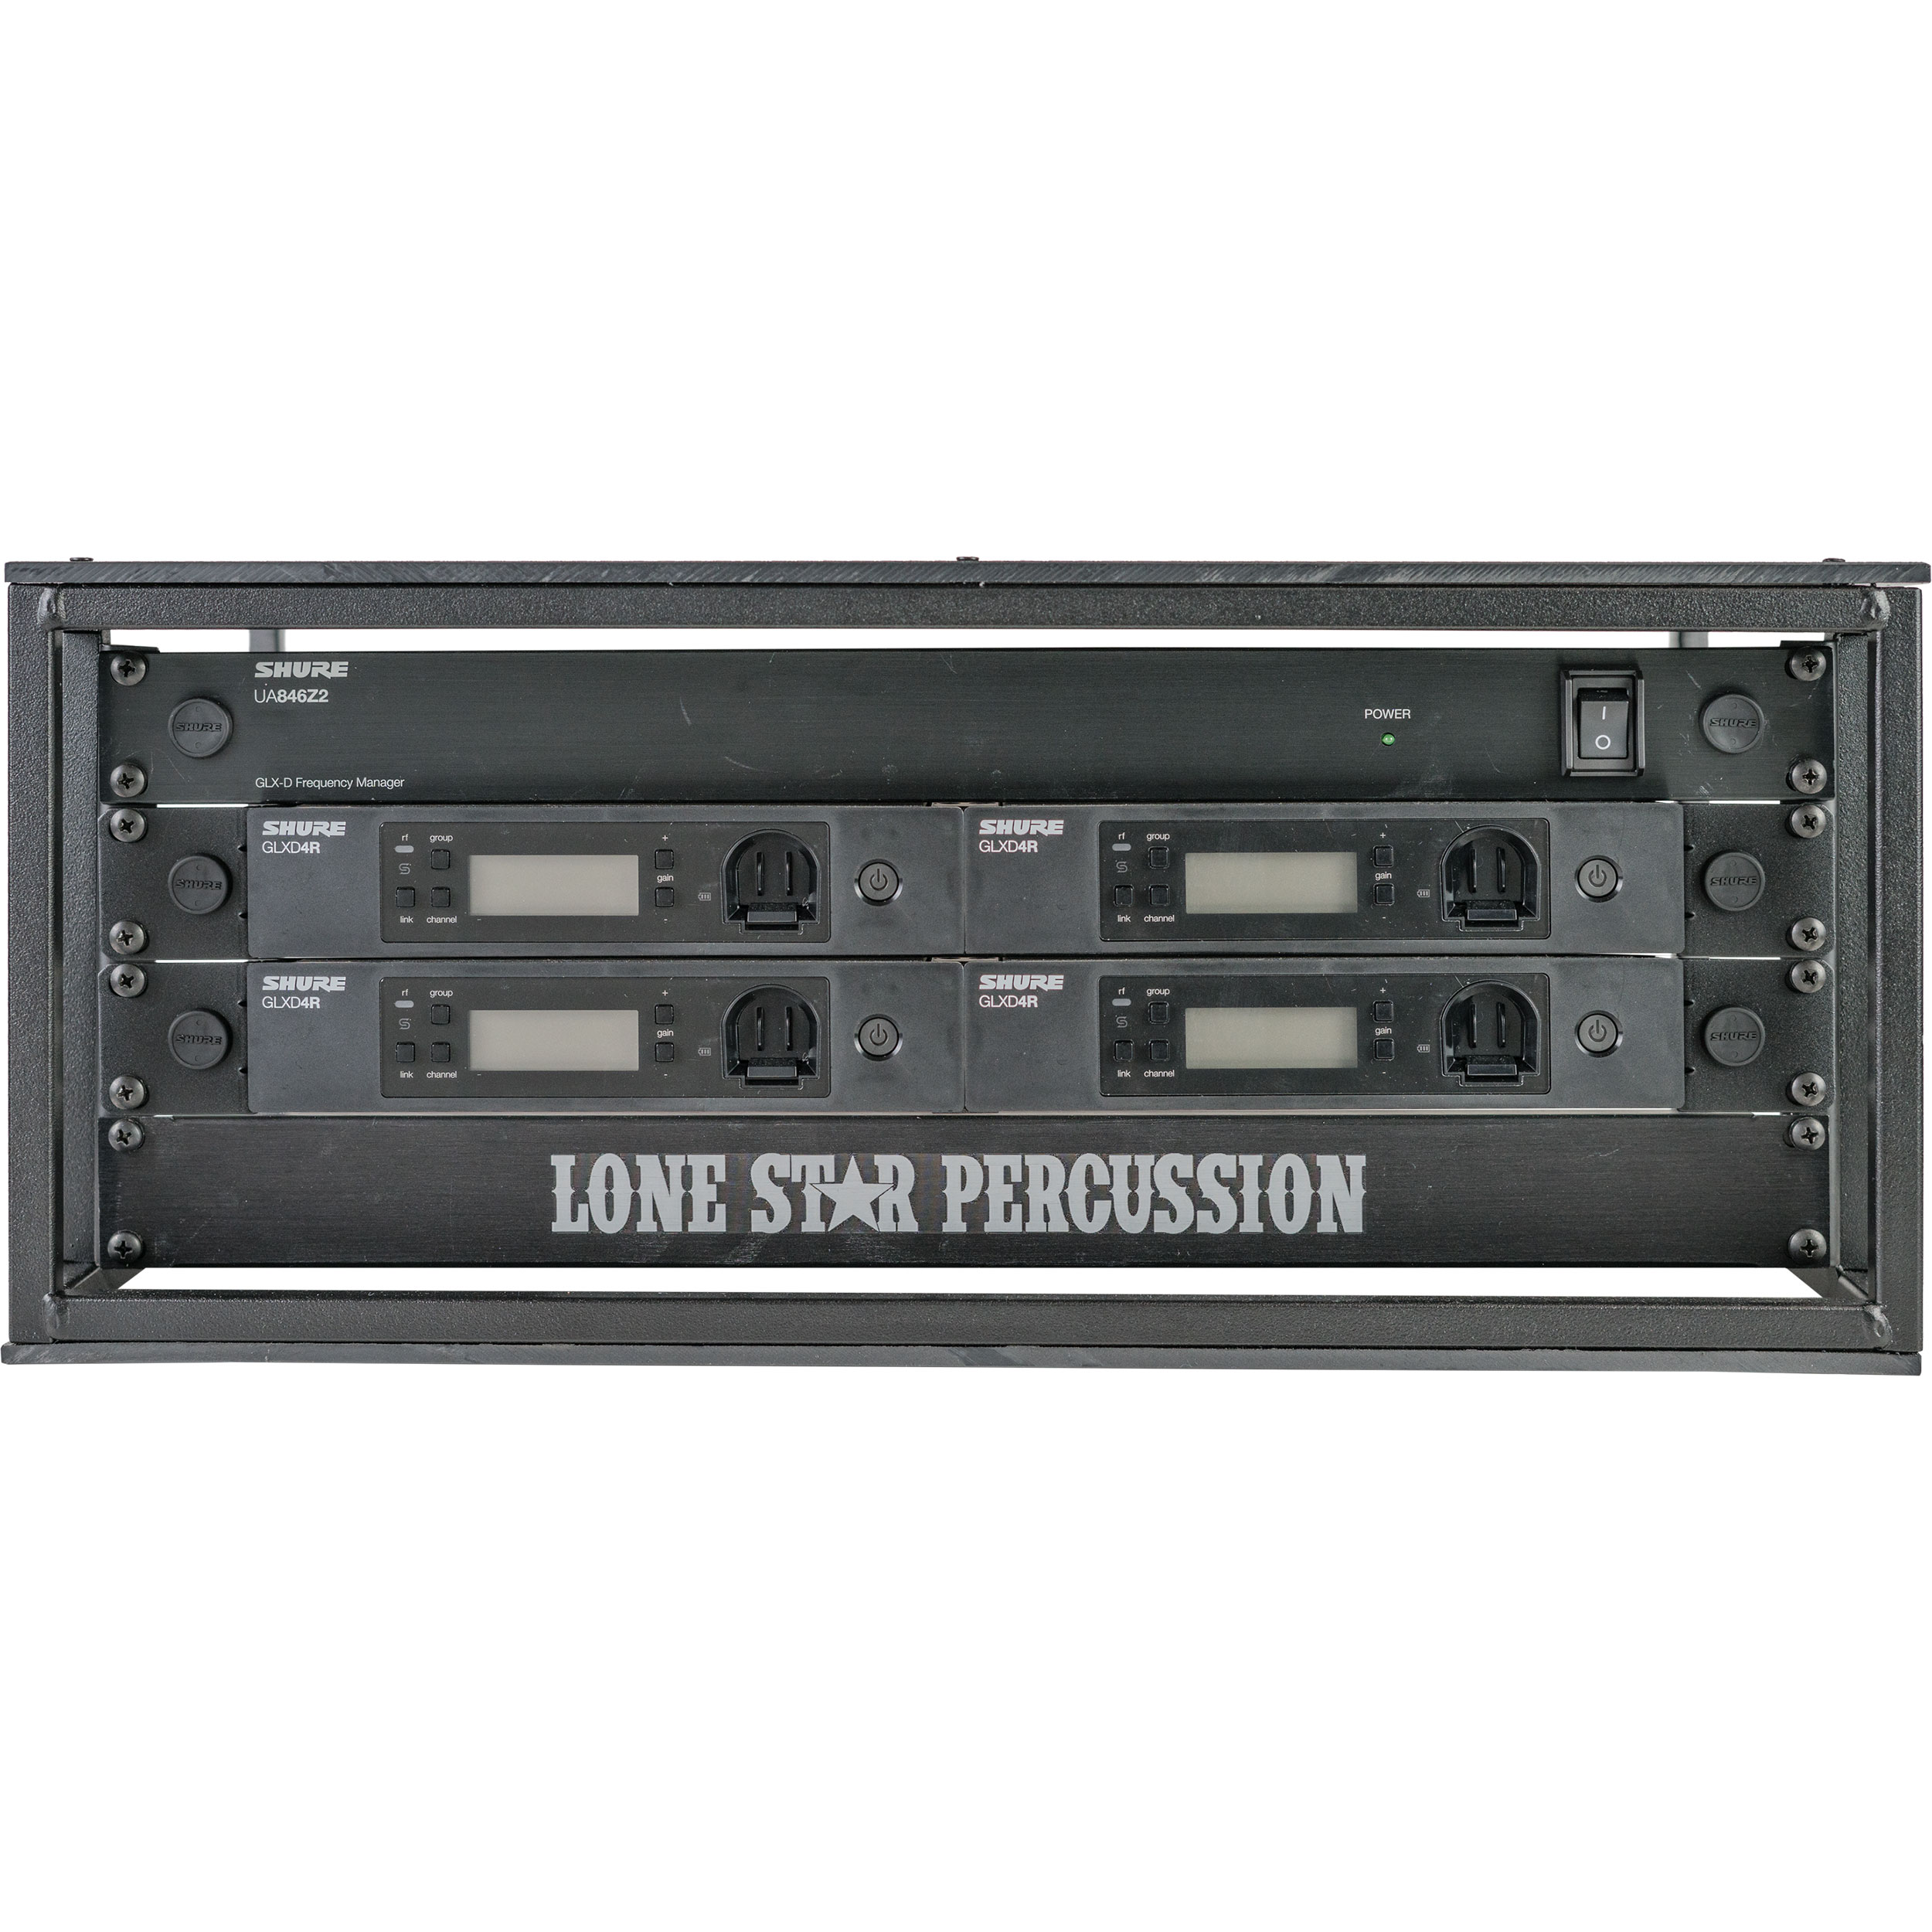 Lone Star Percussion Pre-Wired 4-Channel GLX-D Wireless System with Pageantry Innovations Rack